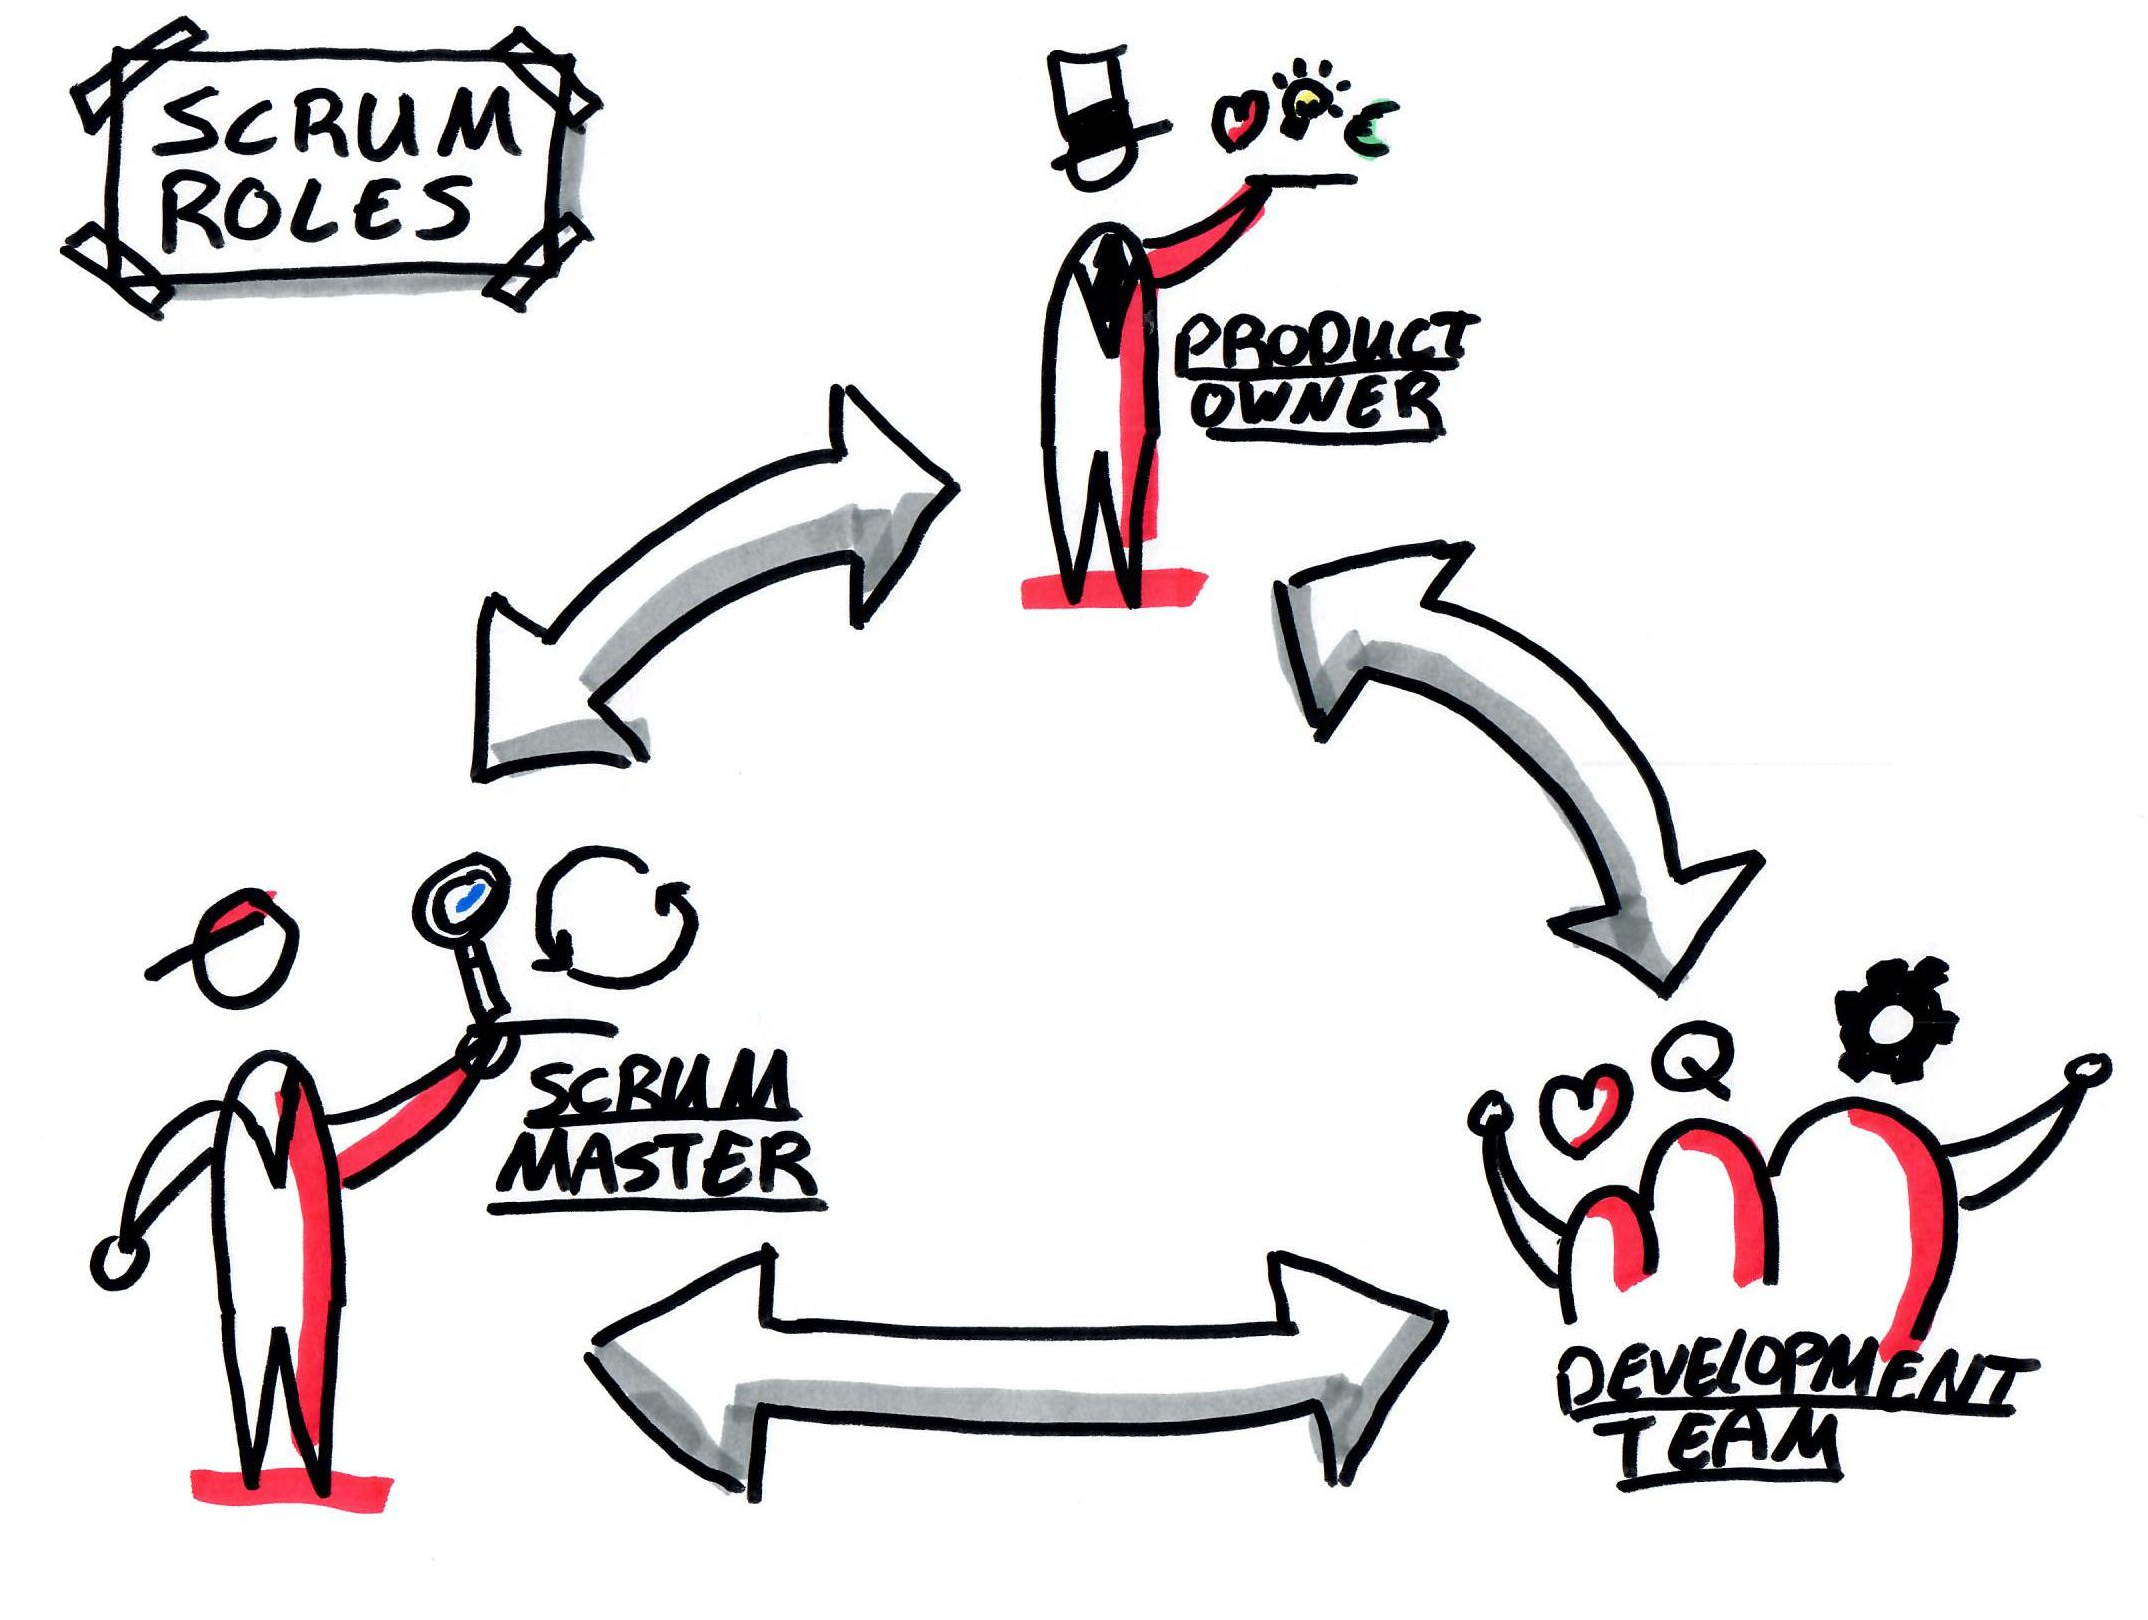 Roles of Scrum